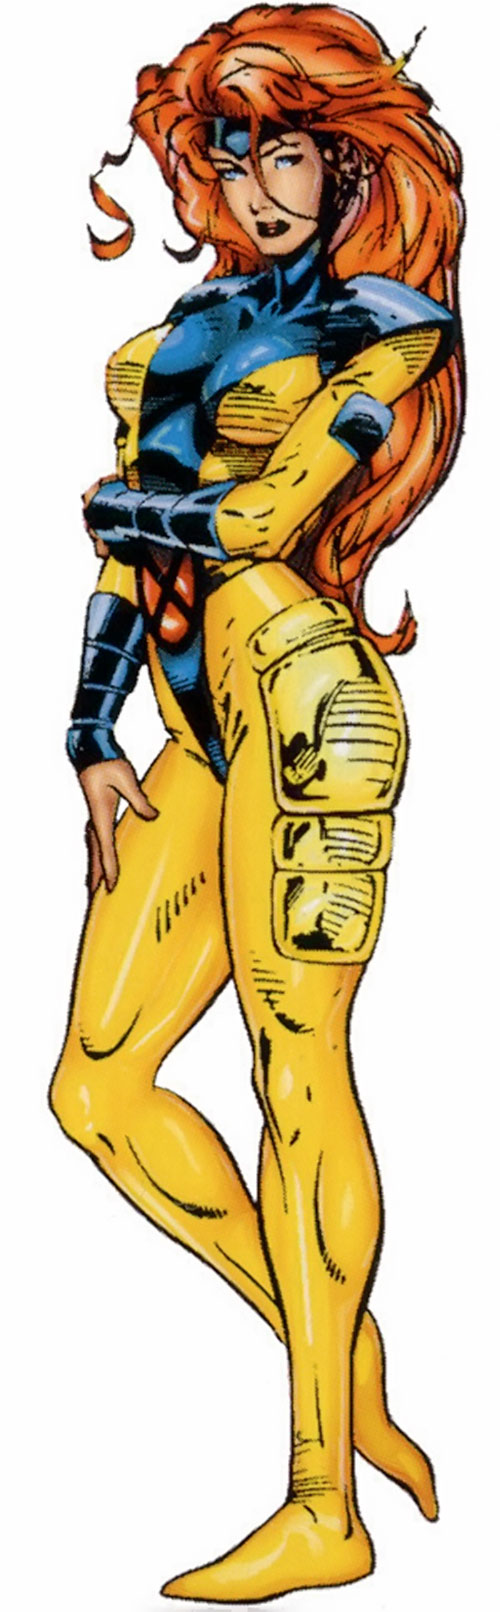 Jean Grey of the X-Men (Marvel Comics) in the yellow and blue costume by Jim Lee